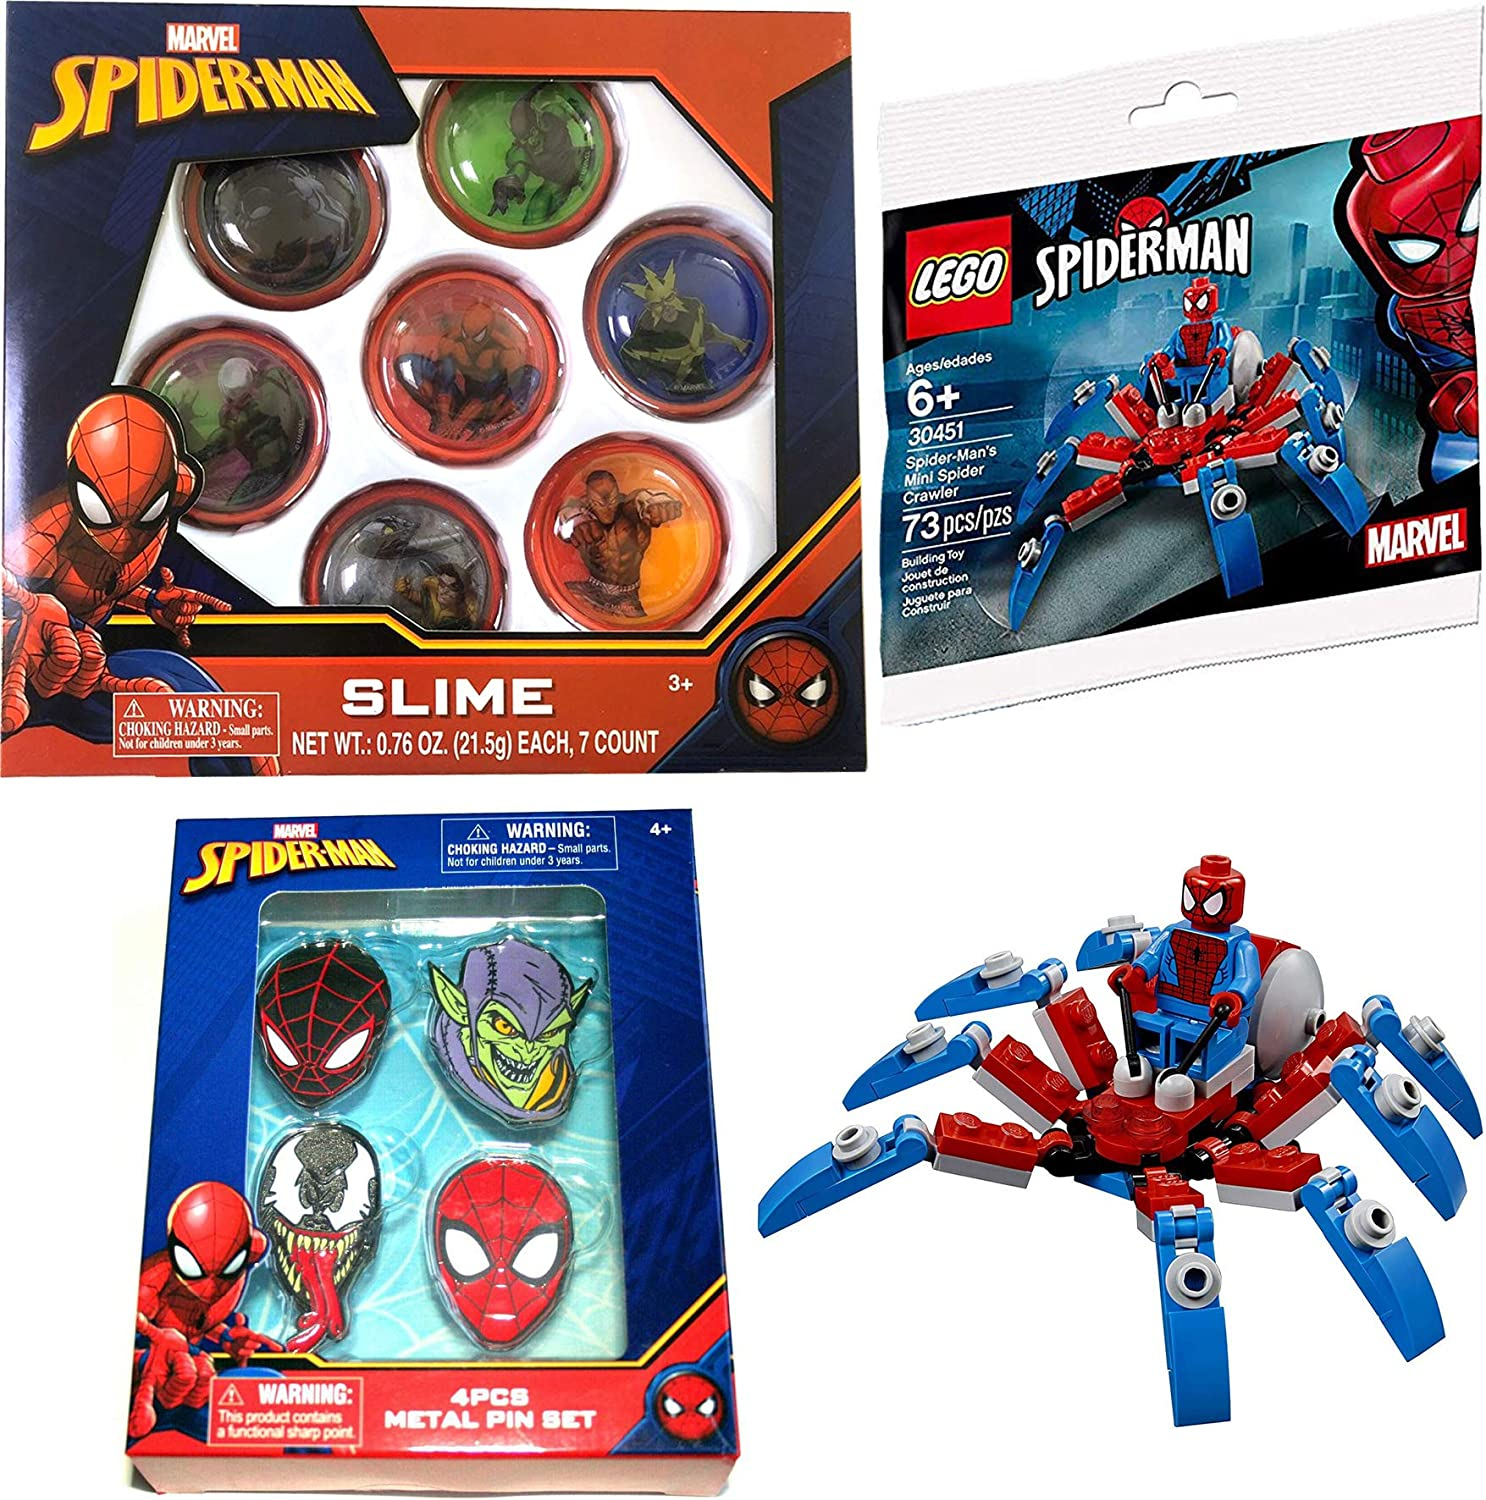 LEGO Web Wonder Spider-Man Mini Spider Crawler 30451 Mini Figure Bundled Pins / Green Goblin & Venom + 7 Toy Character Pack Spider-Man 3 Items